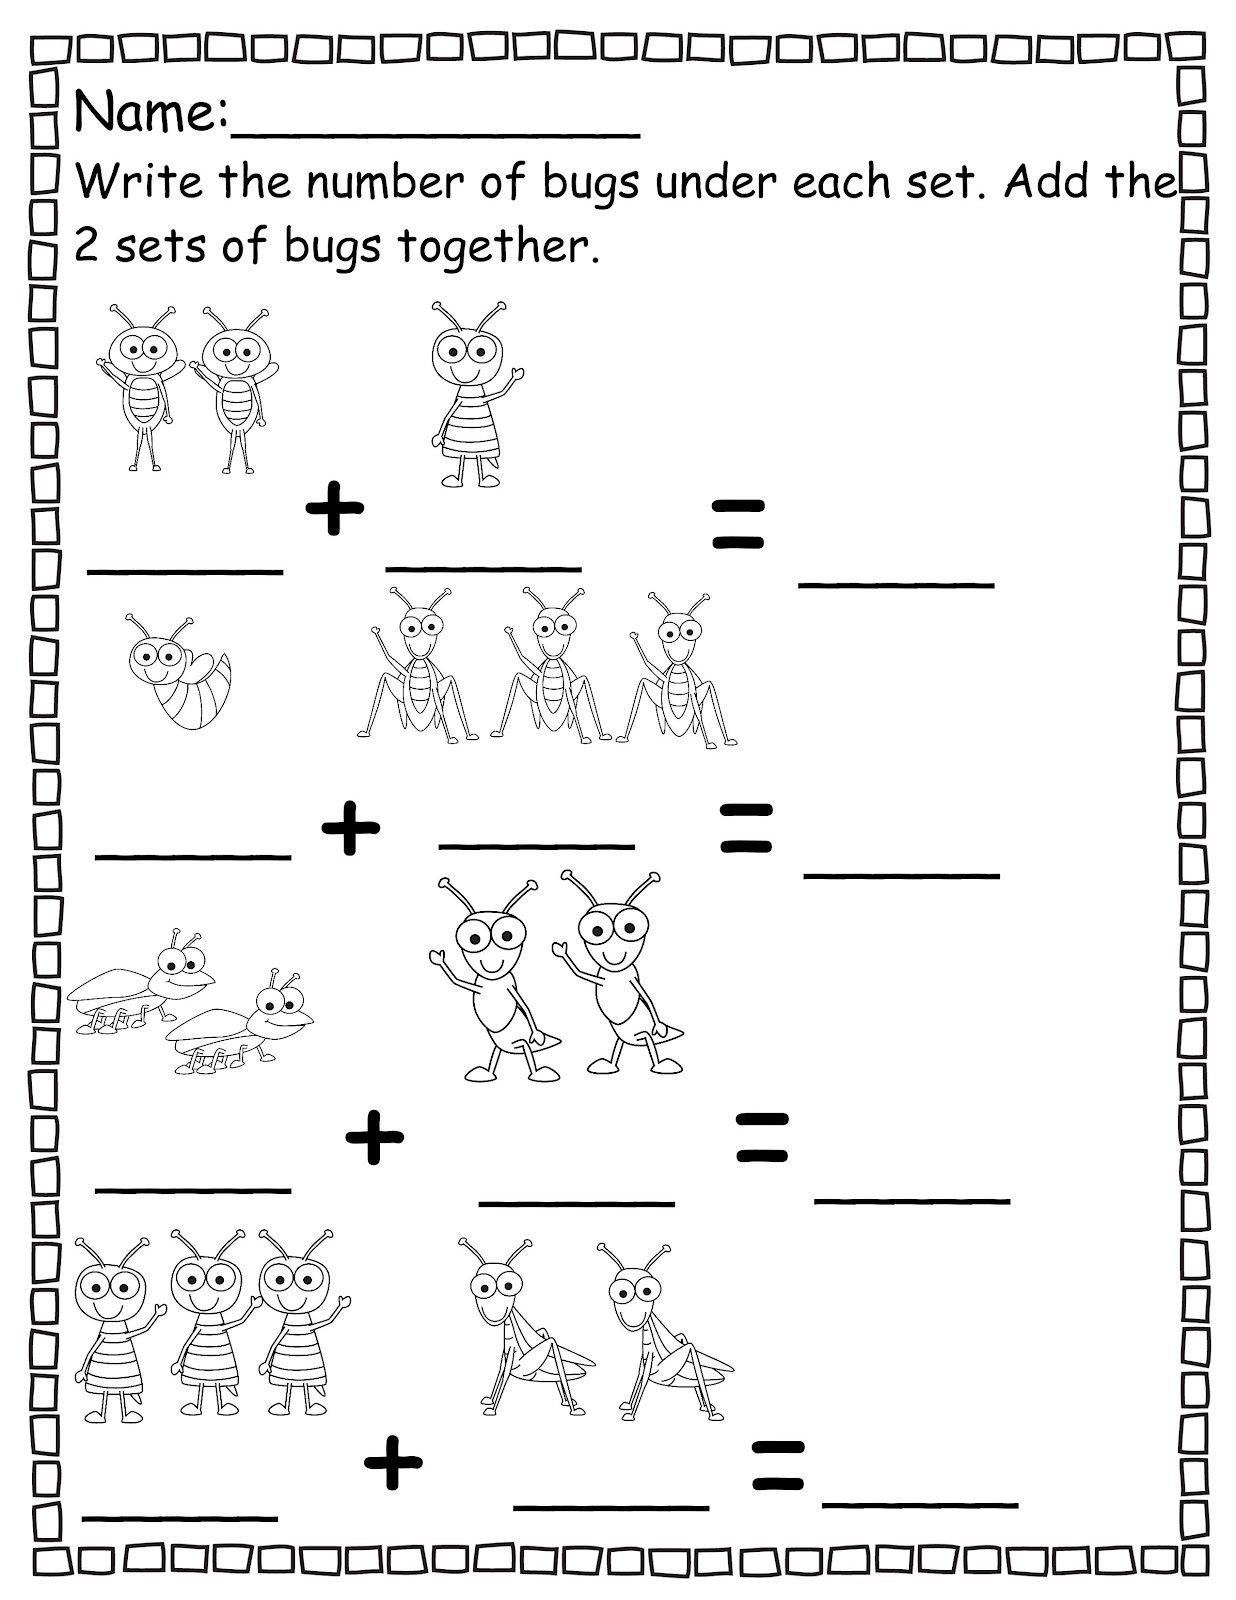 Free Pre K Math Worksheets Printable In 2020 With Images Pre K